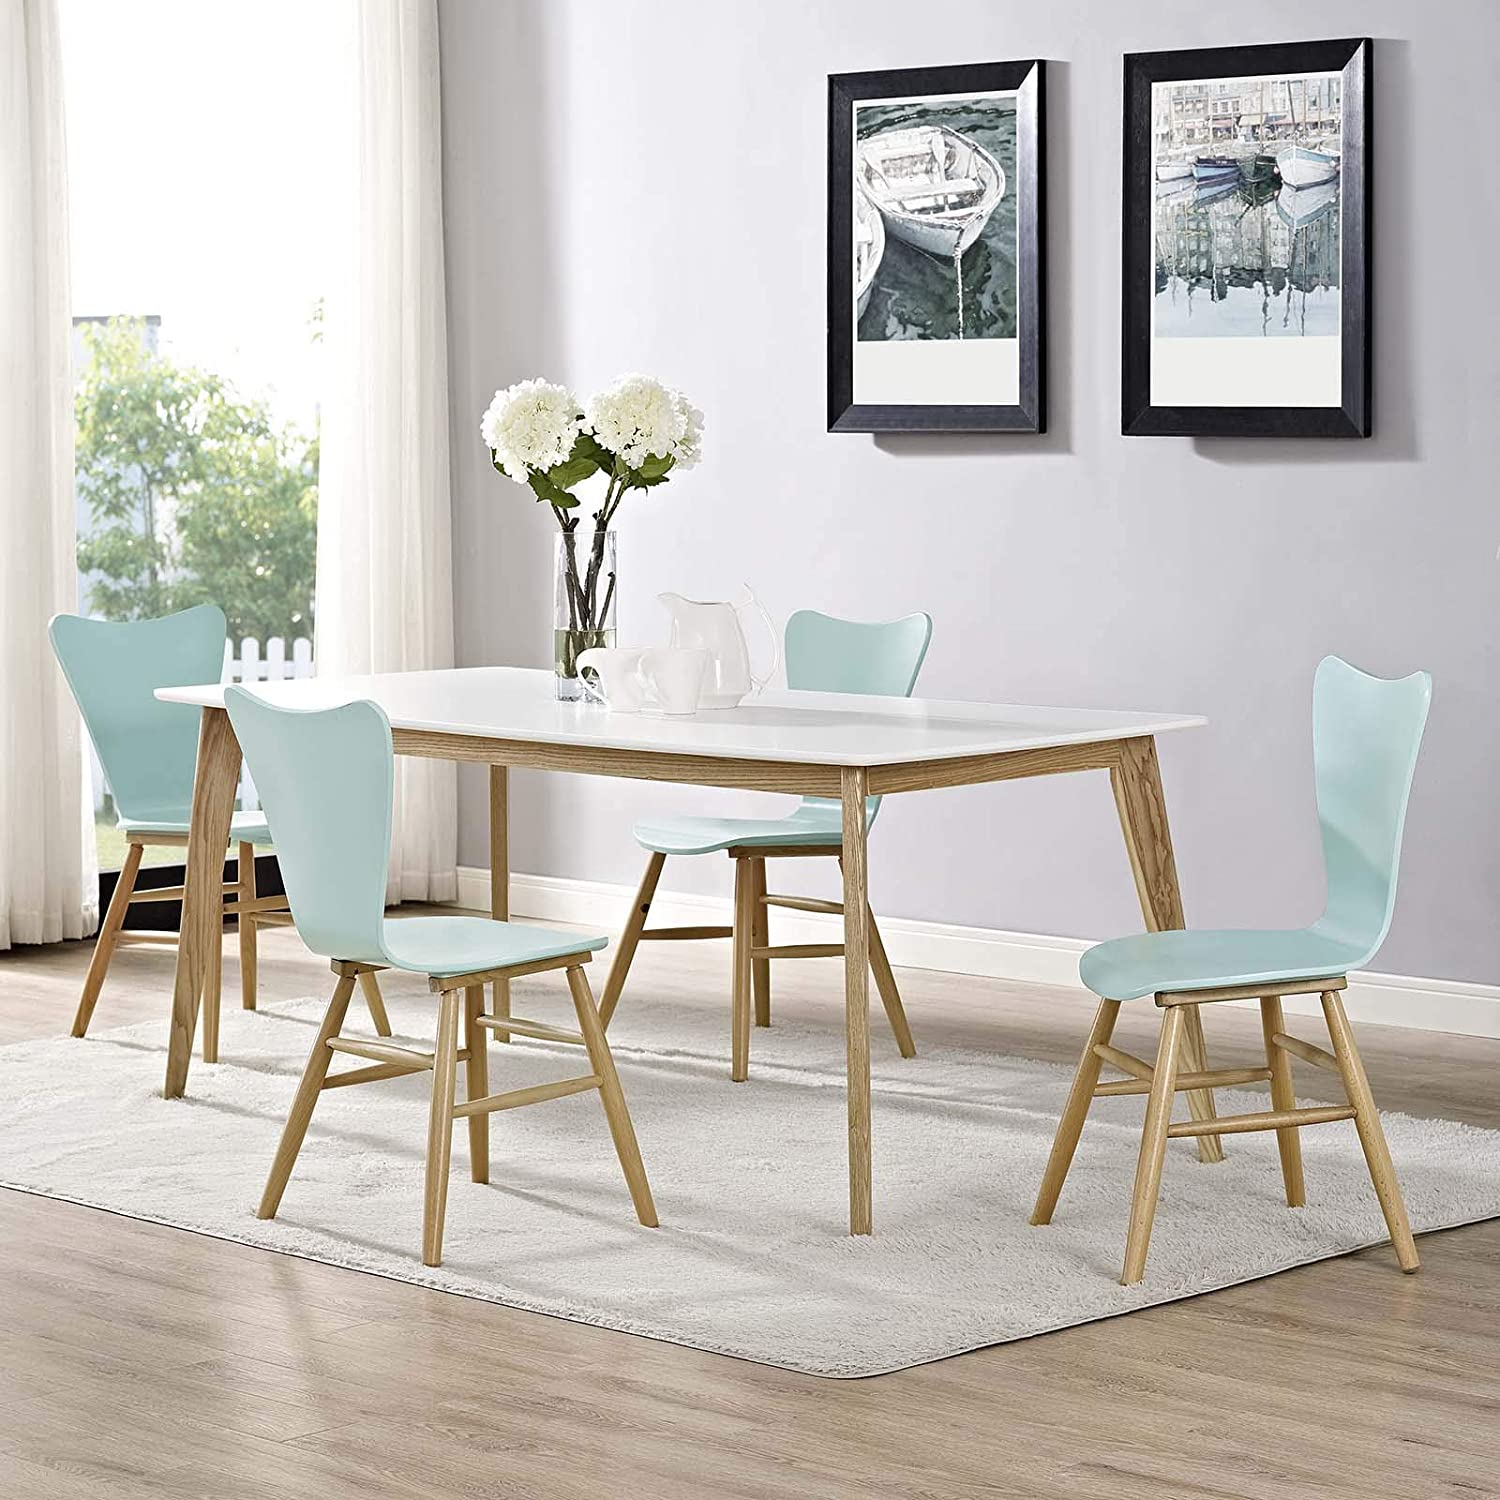 Modway Cascade Mid-Century Modern Wood Four Kitchen and Dining Room Chairs in Light Blue